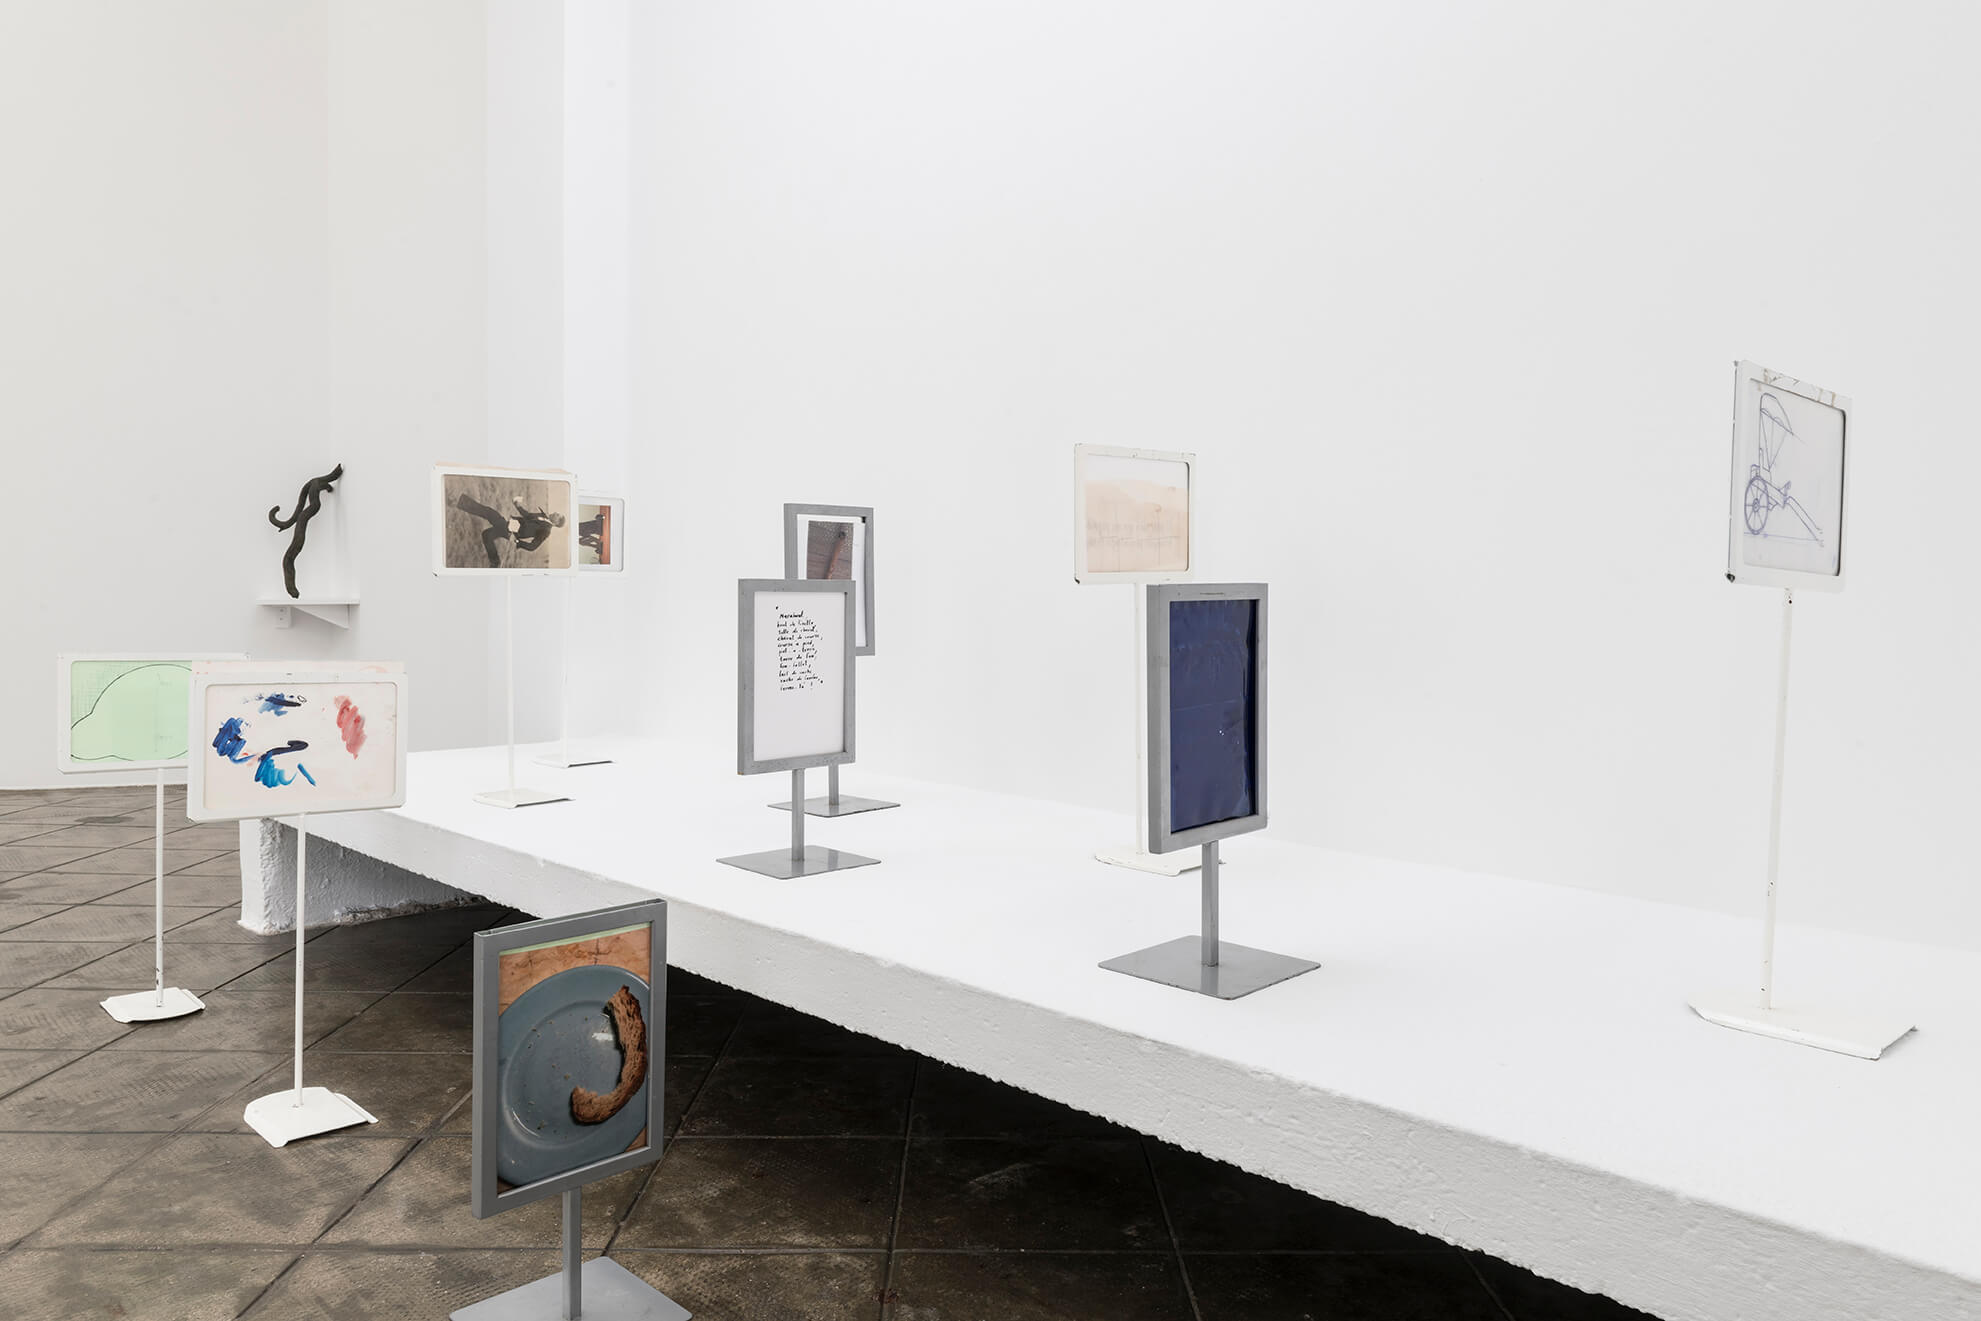 Installation view: Ana Jotta, ProjecteSD | Untitled | ProjecteSD